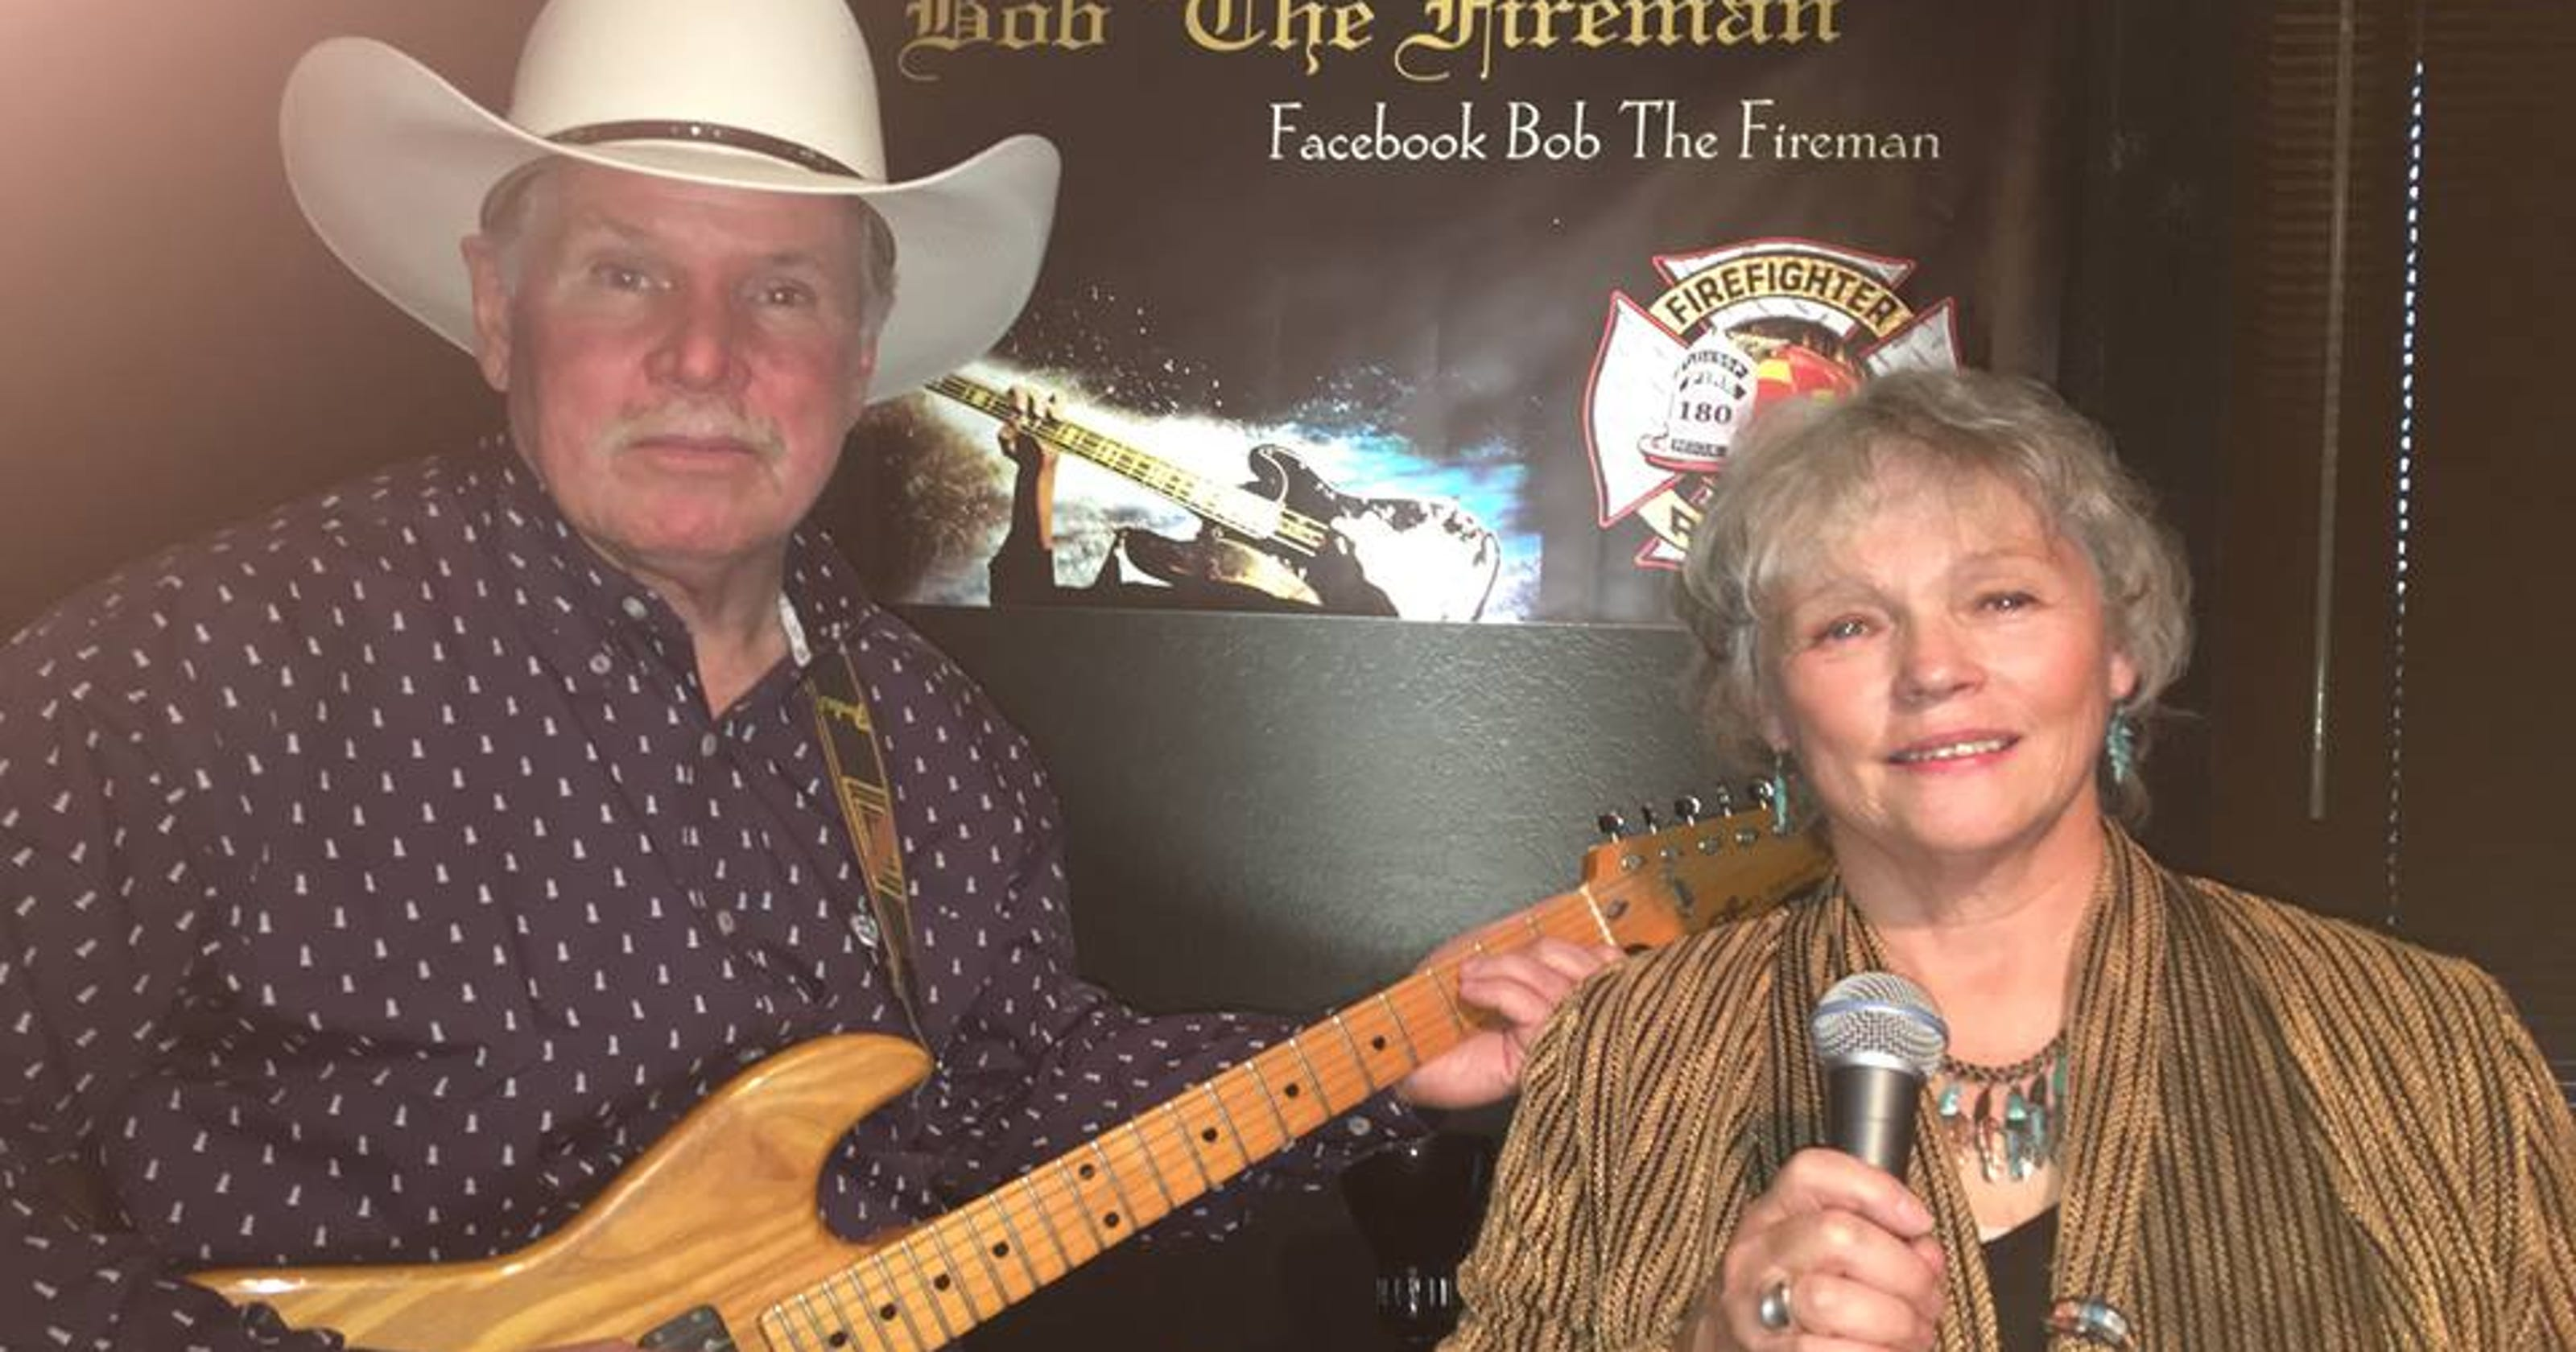 Bob the Fireman fills the boot with music